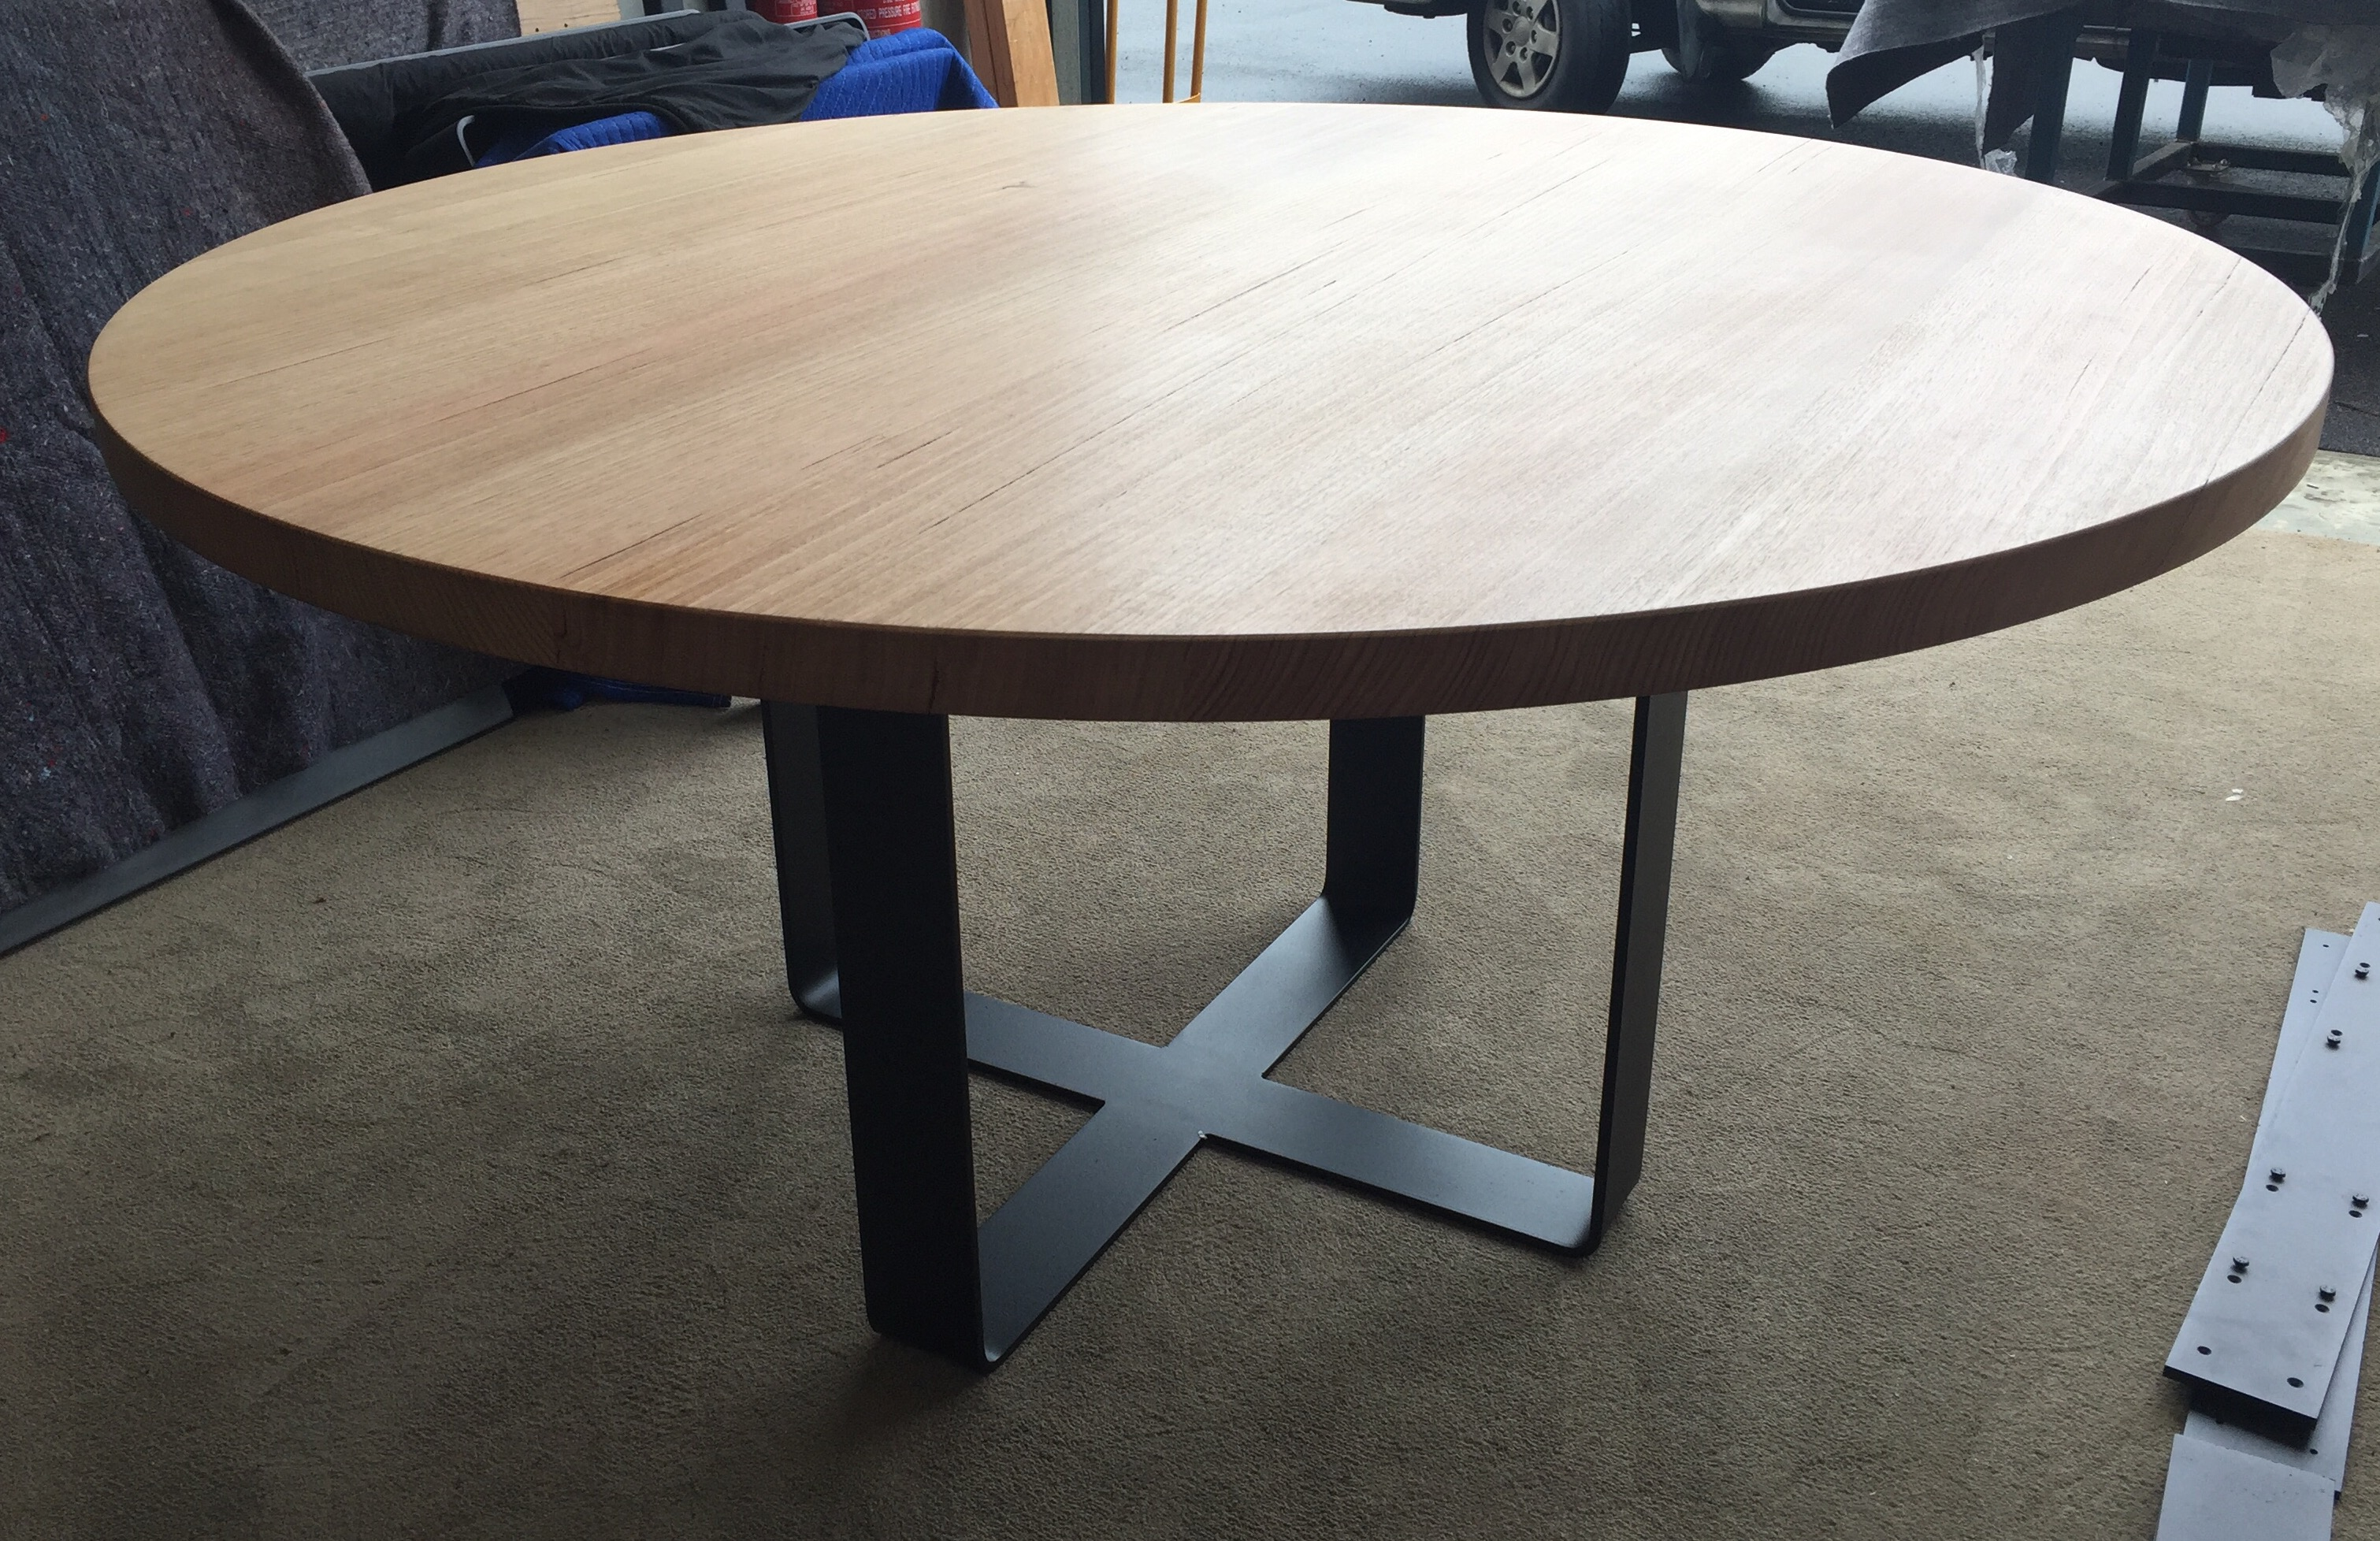 Round dining table mounted onto king or monarch loop legs lumber furniture - King furniture dining table ...